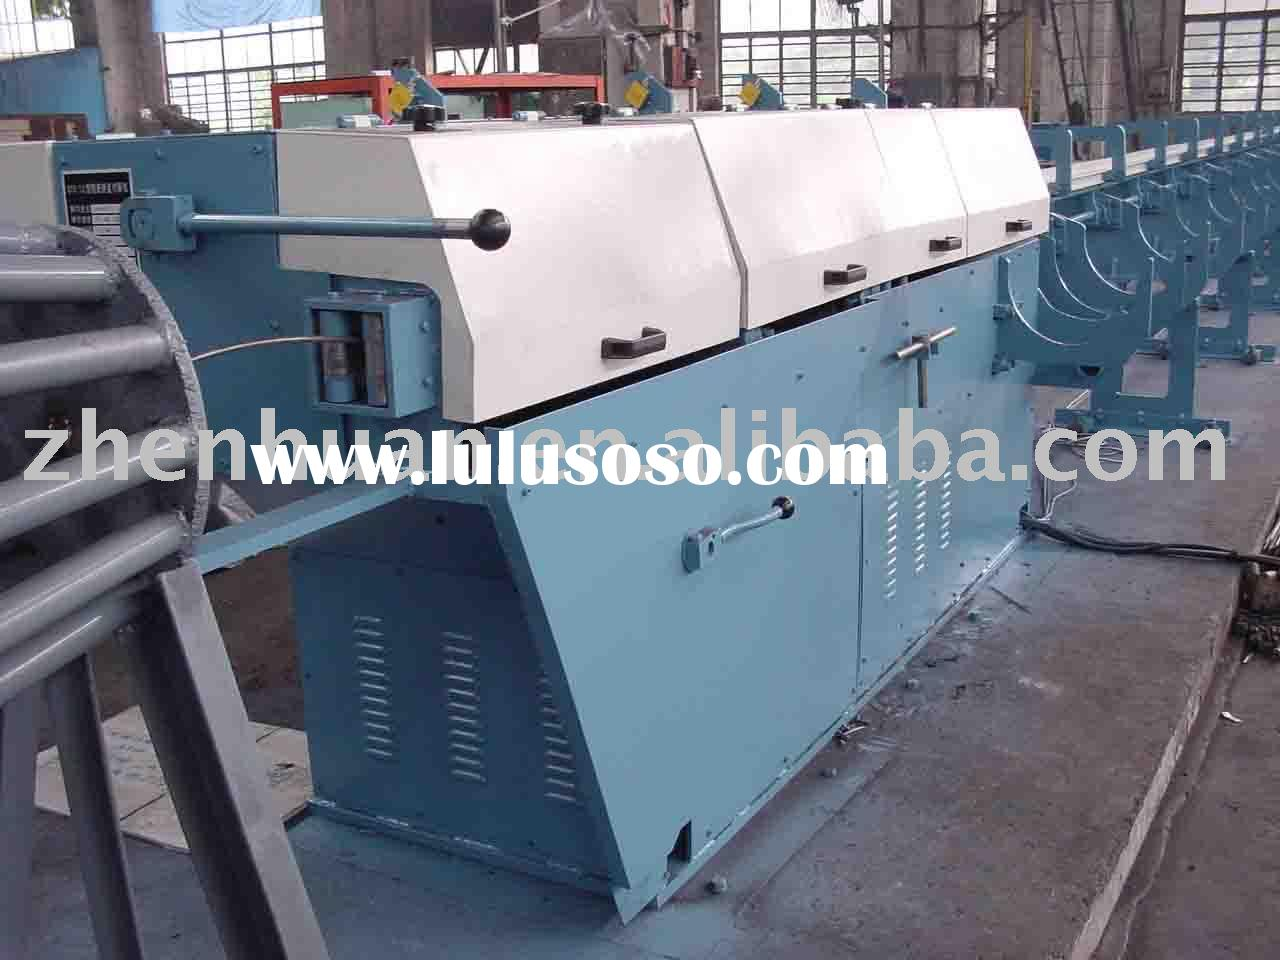 machine,rebar straightener,steel bar cutter,steel bar processing mac